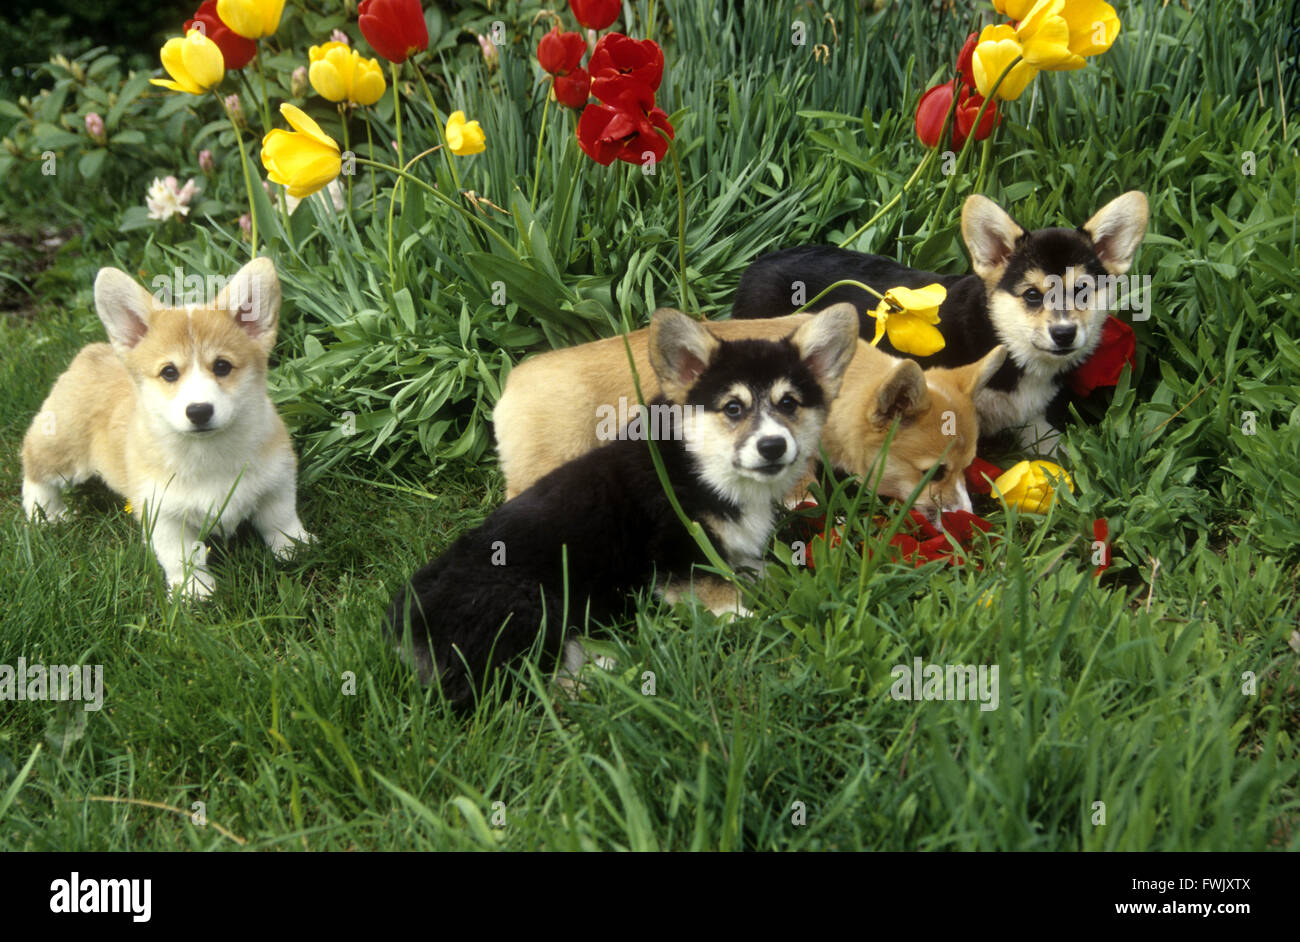 4 Corgi puppies 'tip-toeing through the tulips'! Puppies at play in tulips. - Stock Image